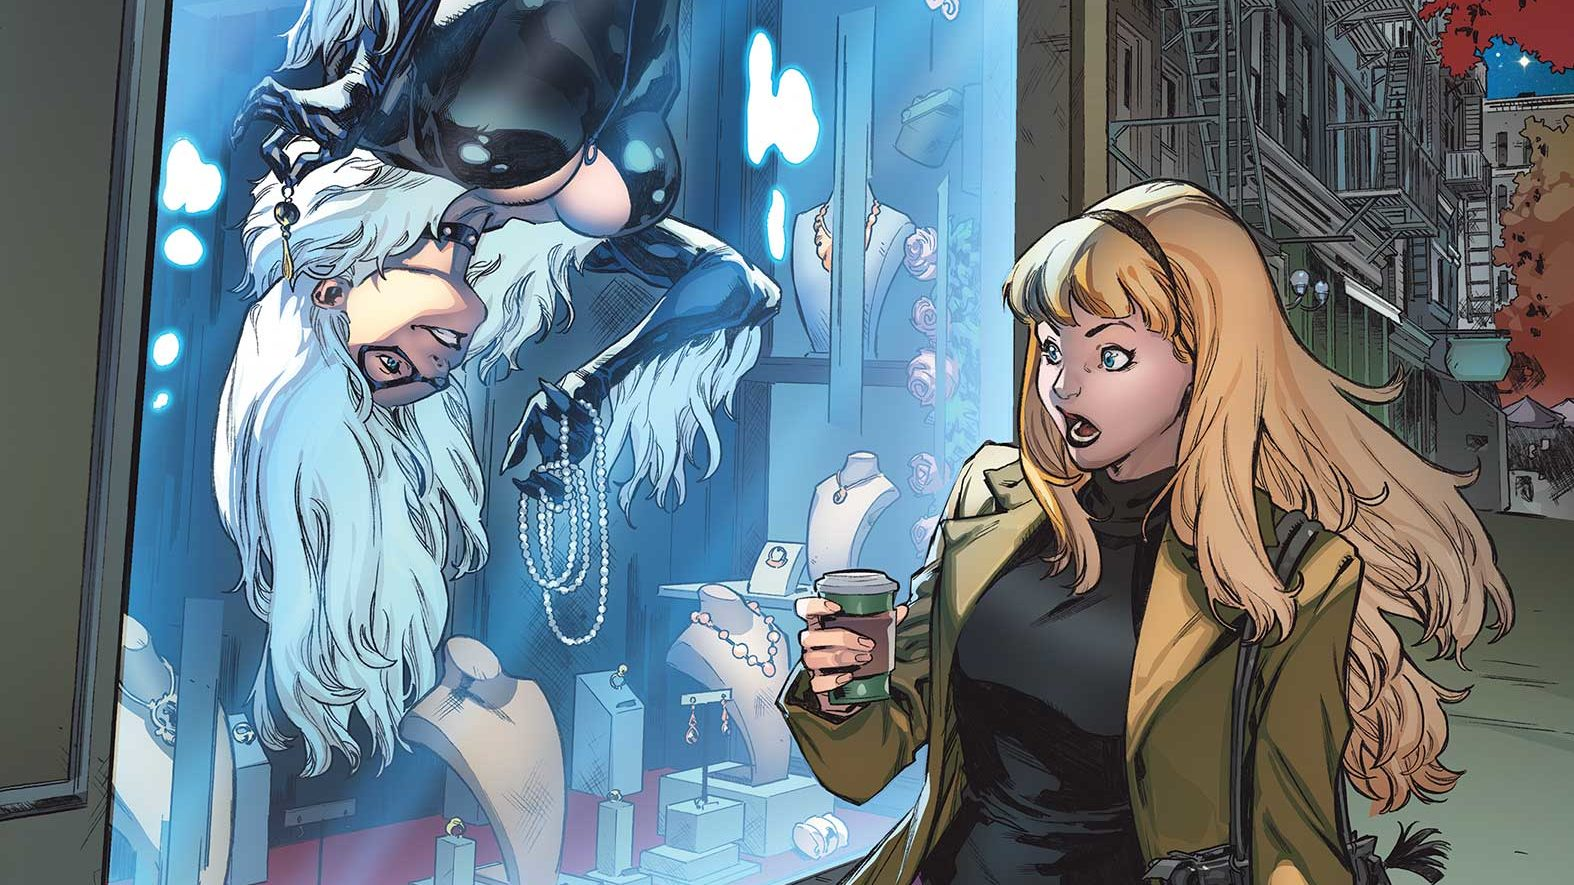 Marvel February 2020 solicits: Gwen Stacy takes over variant covers, Wolverine makes his Dawn of X debut, more